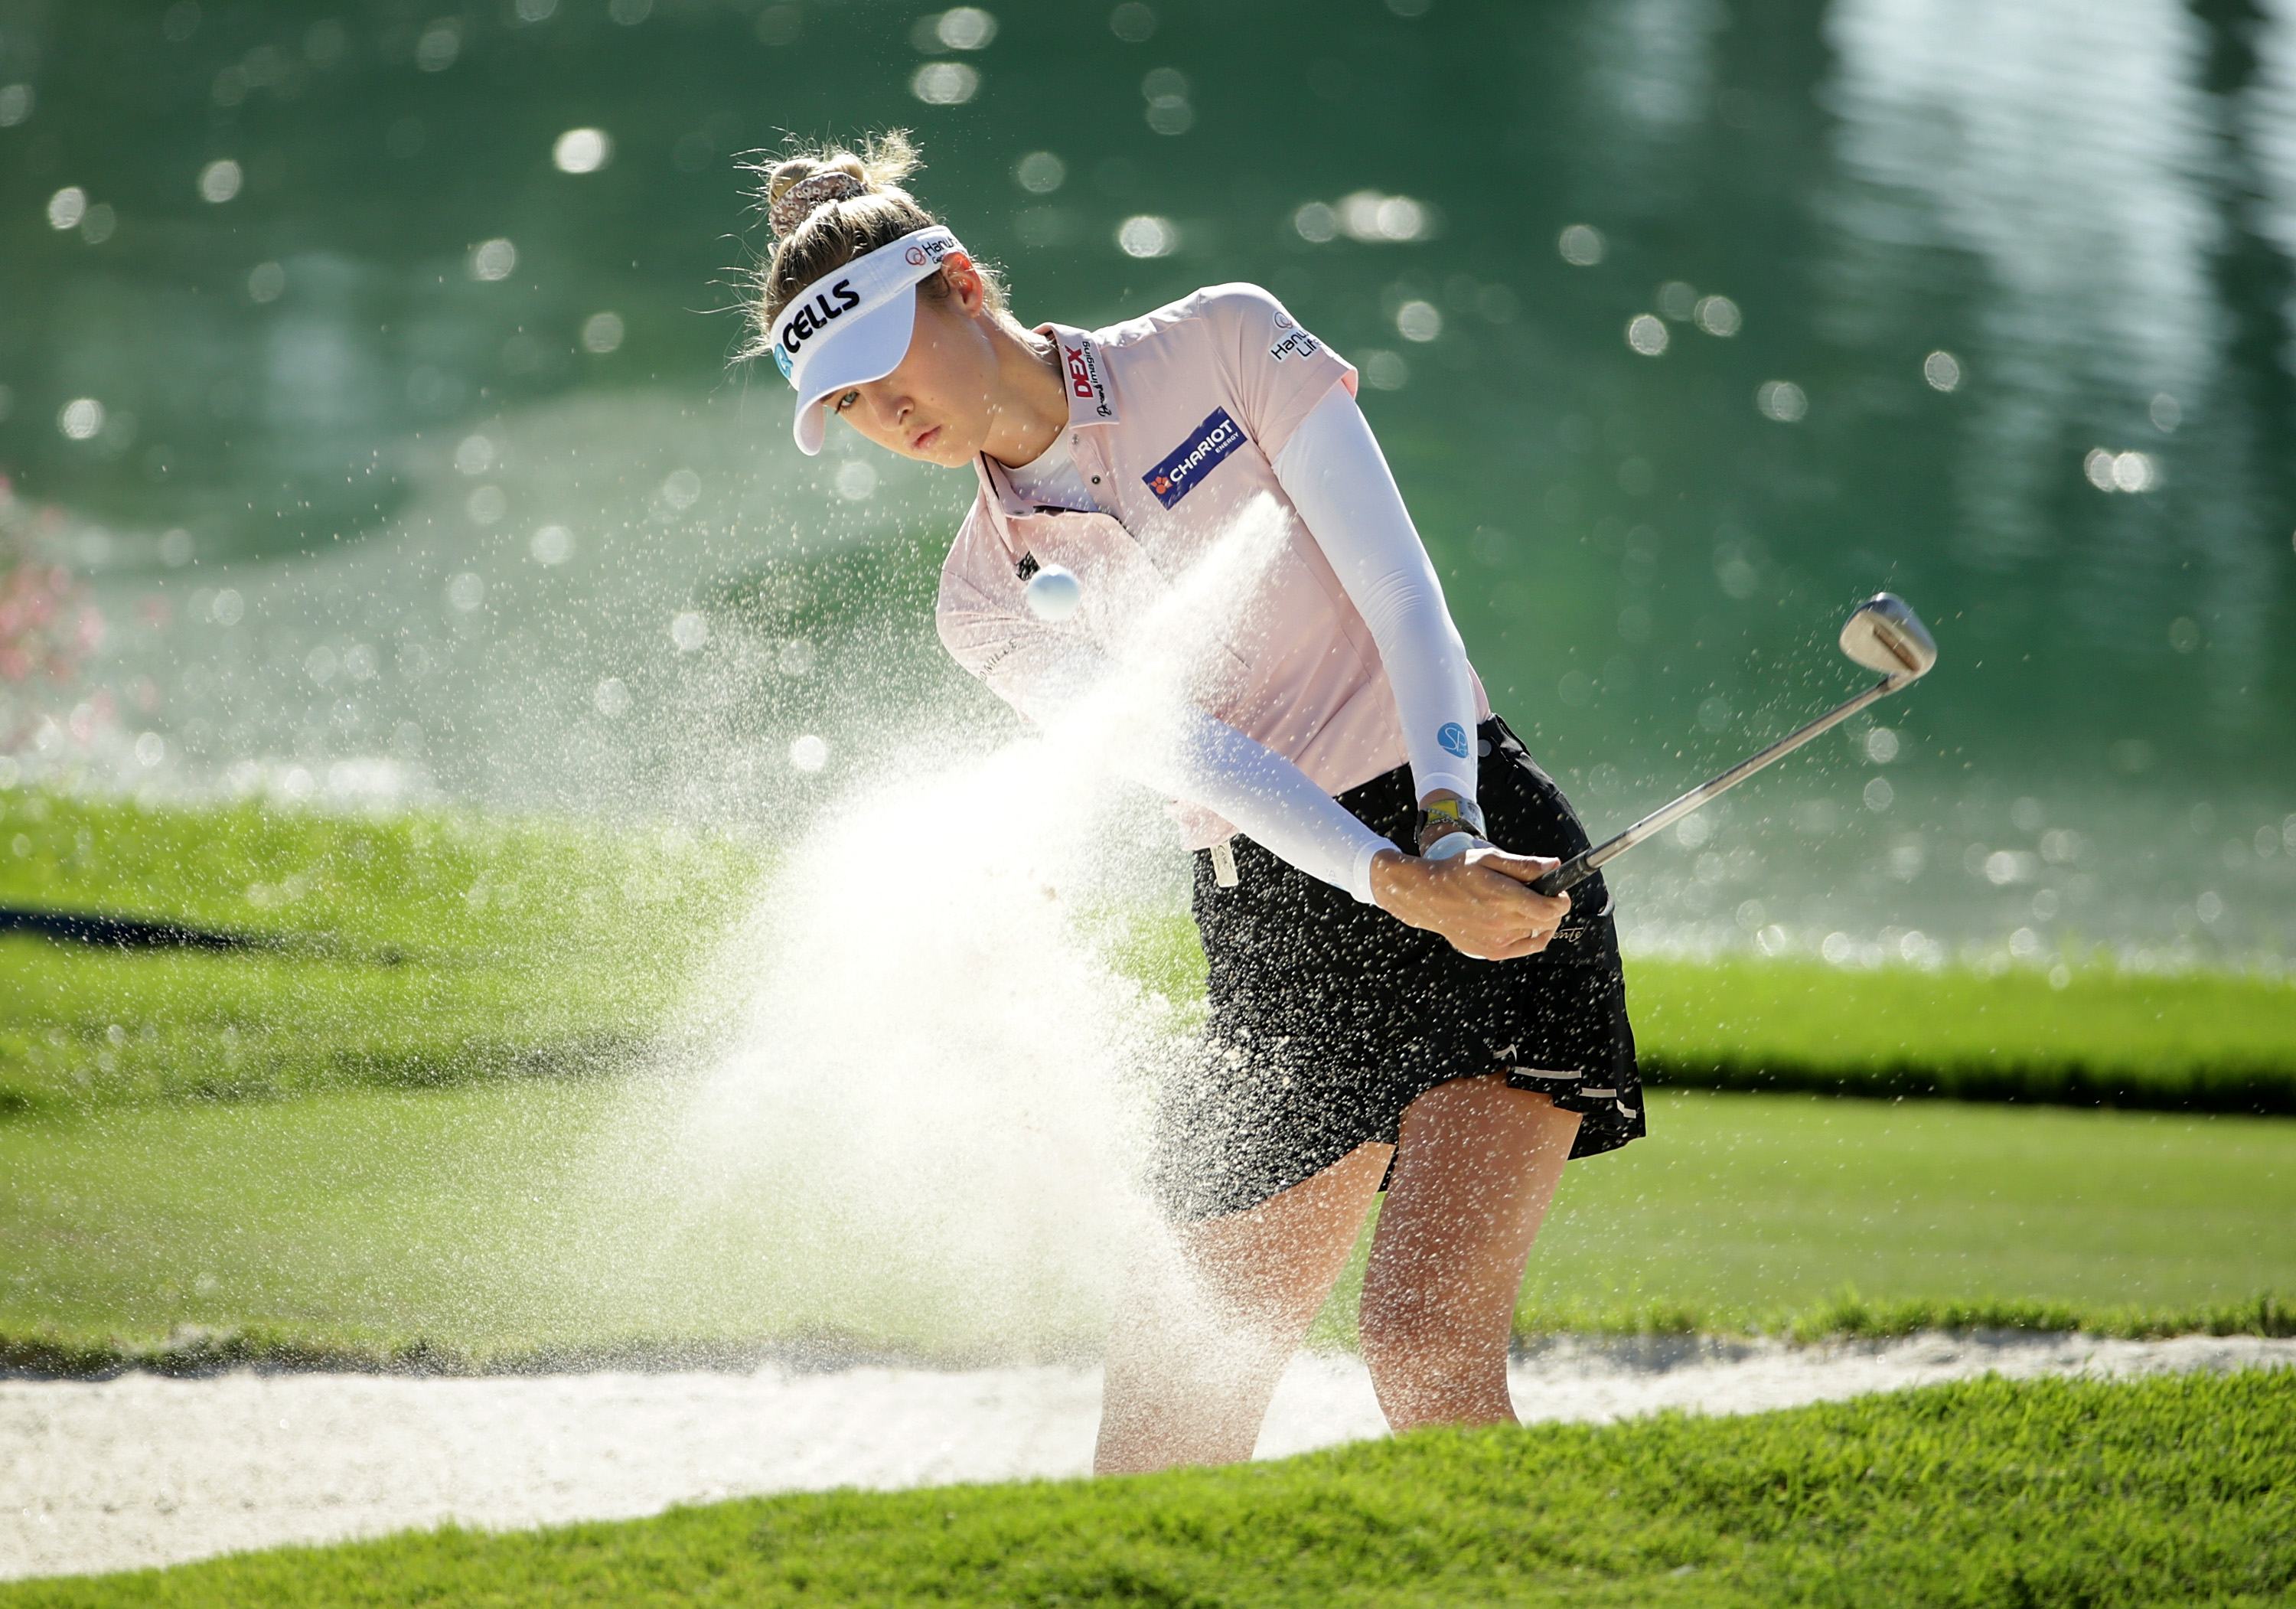 Nelly Korda takes ANA Inspiration lead as temperatures soar in California